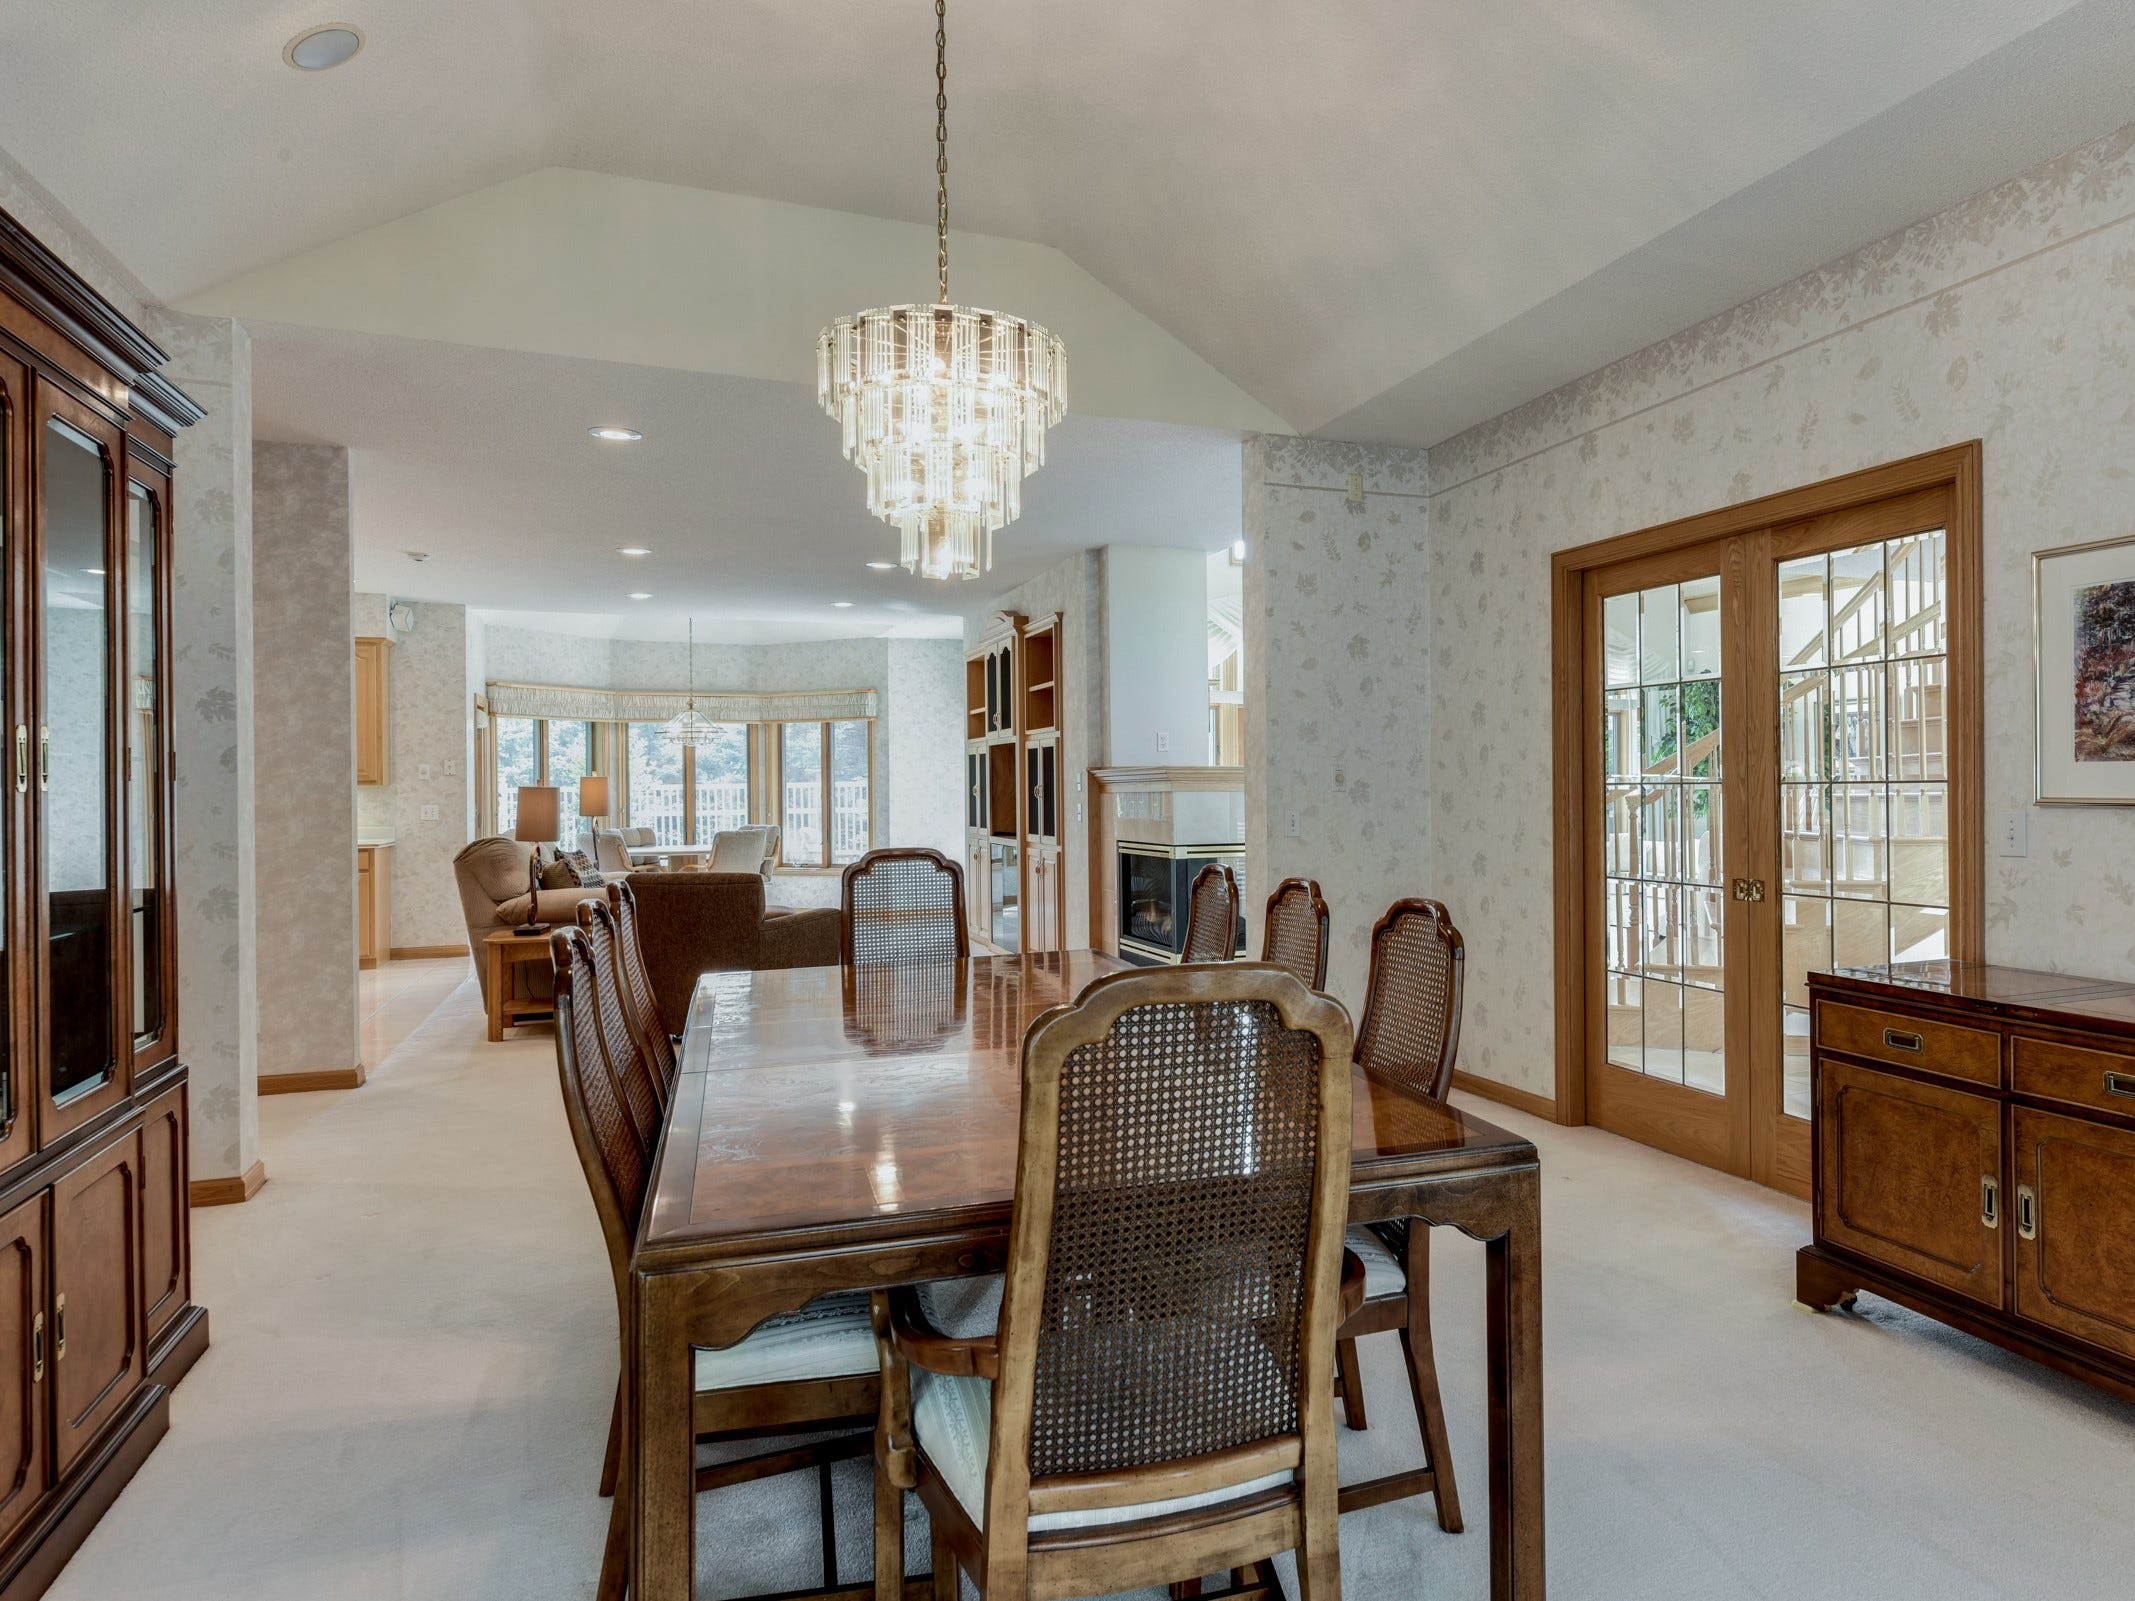 The formal dining room can be accessed via French doors from the entryway and features a crystal chandelier as well as a rounded bay window.